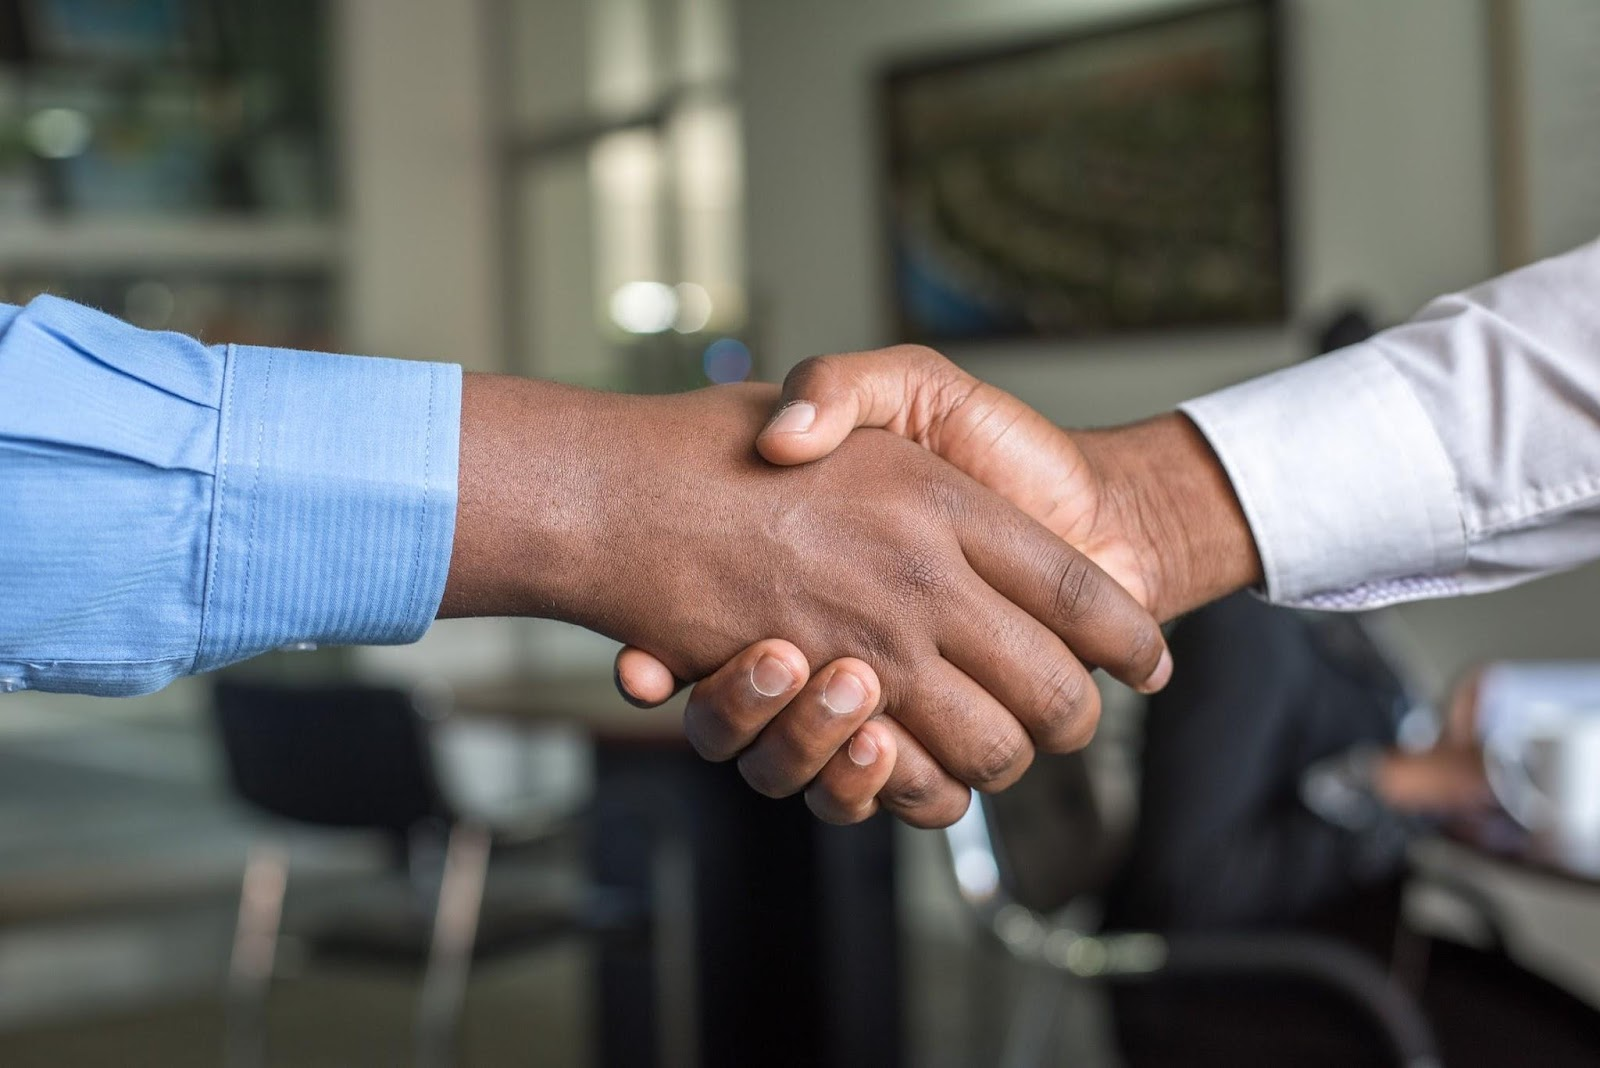 shaking hands on the secrets of sealing deals